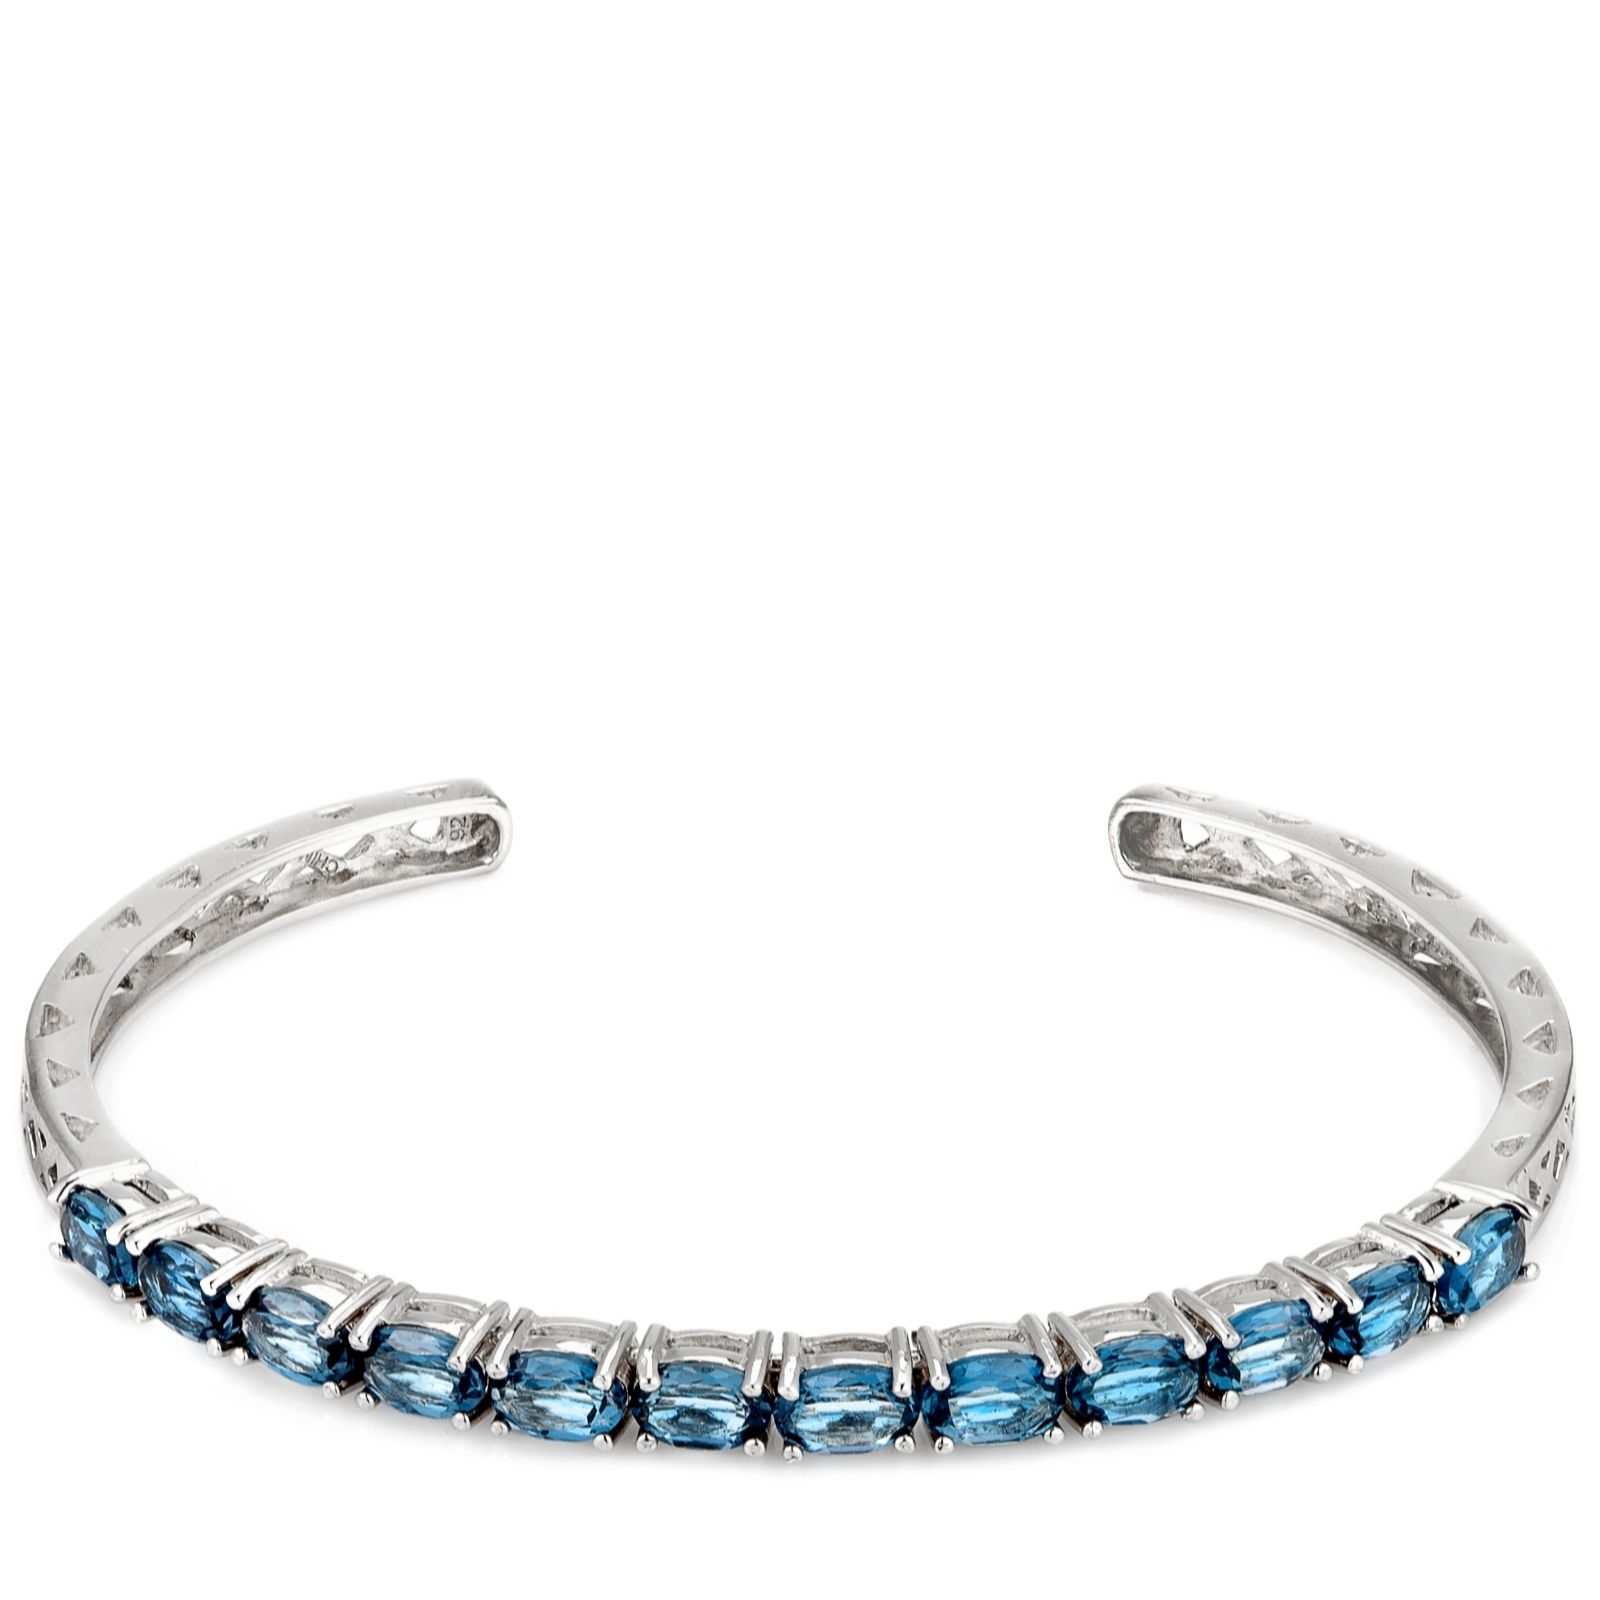 5ct London Blue Topaz Flexible Bangle Sterling Silver